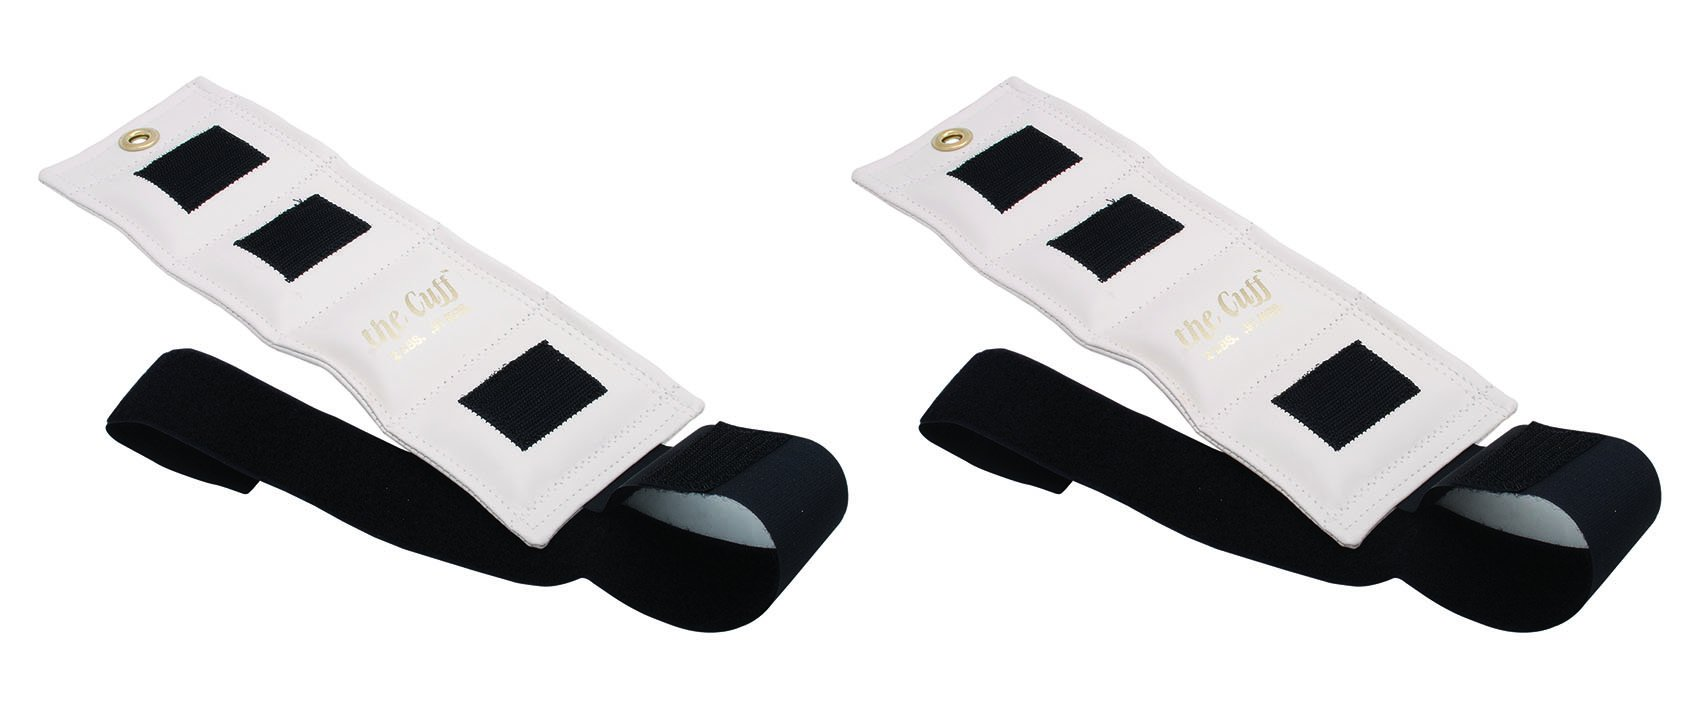 The Cuff Original Ankle and Wrist Weight - 2 pound, White - Set of 2